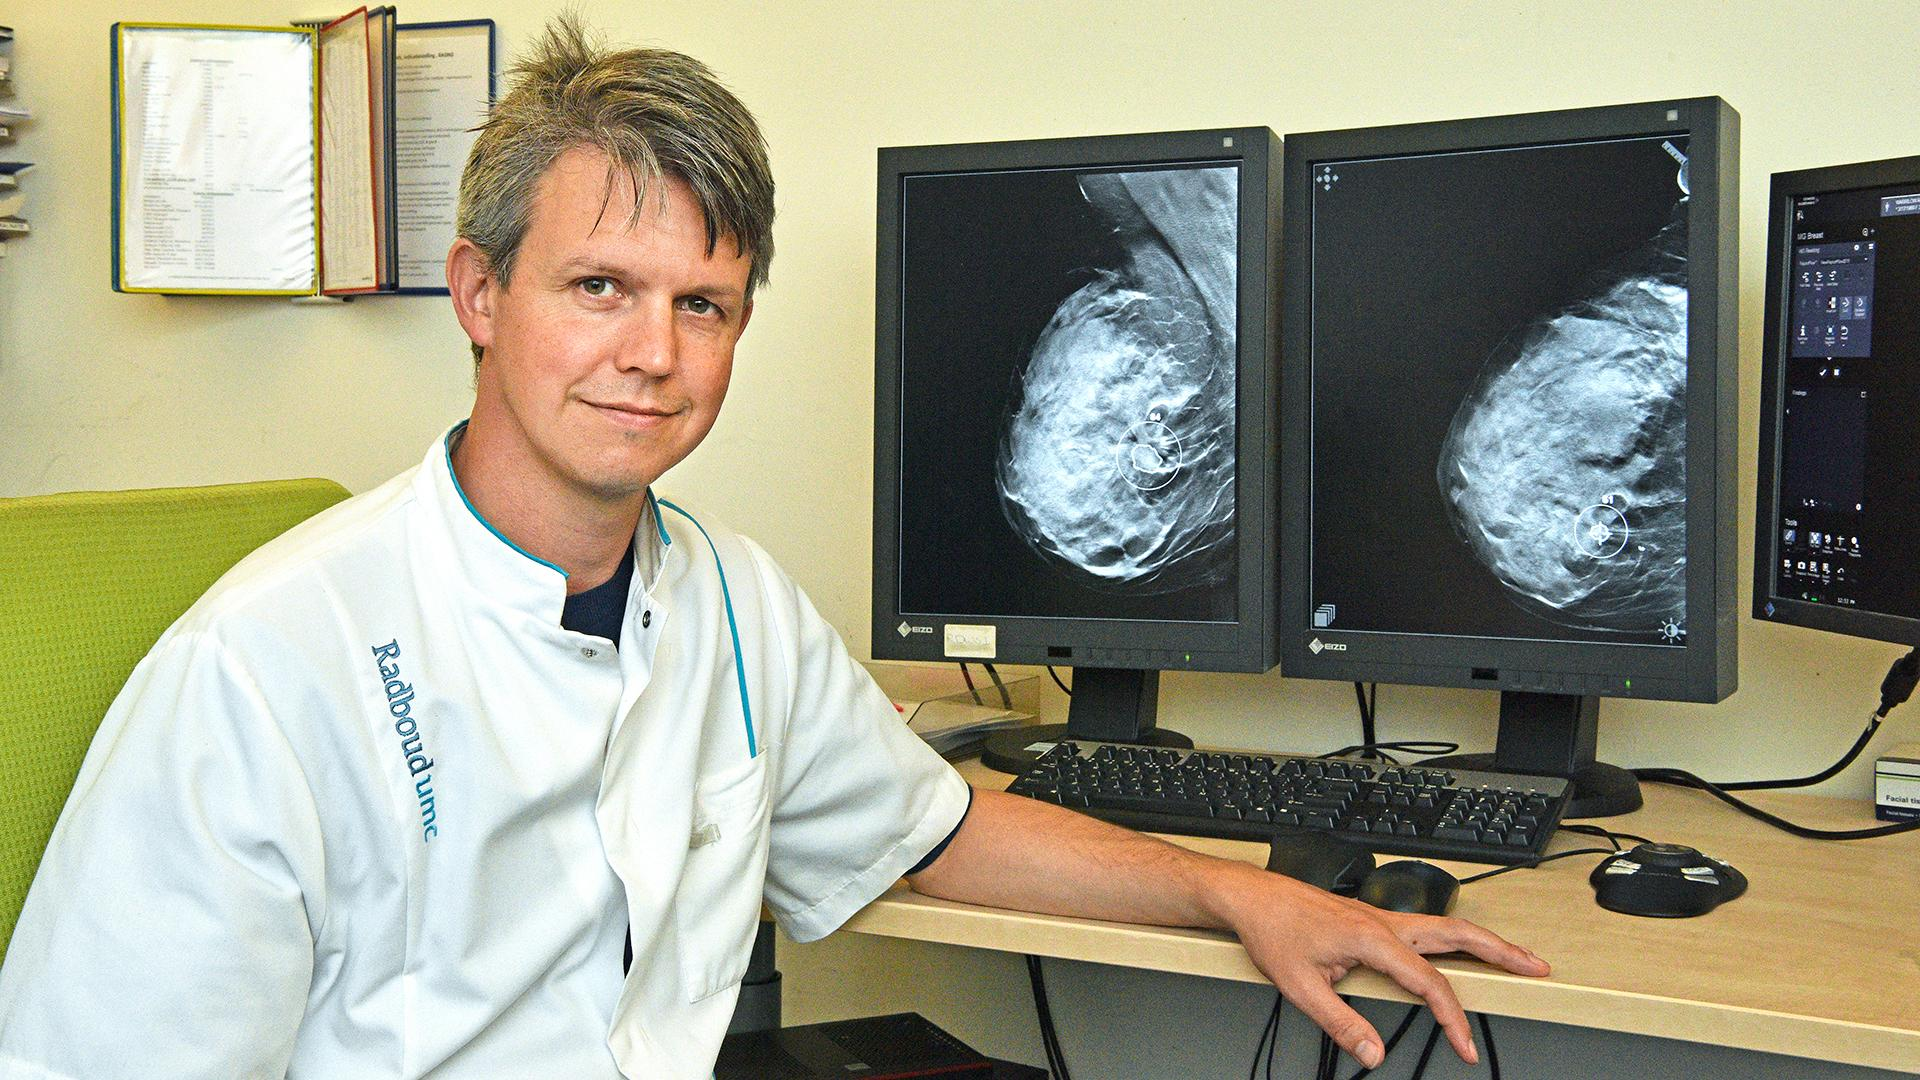 Radiologist Ritse Mann, MD, PhD, head of breast imaging at Radboud University Medical Center, Nijmegen, the Netherlands.